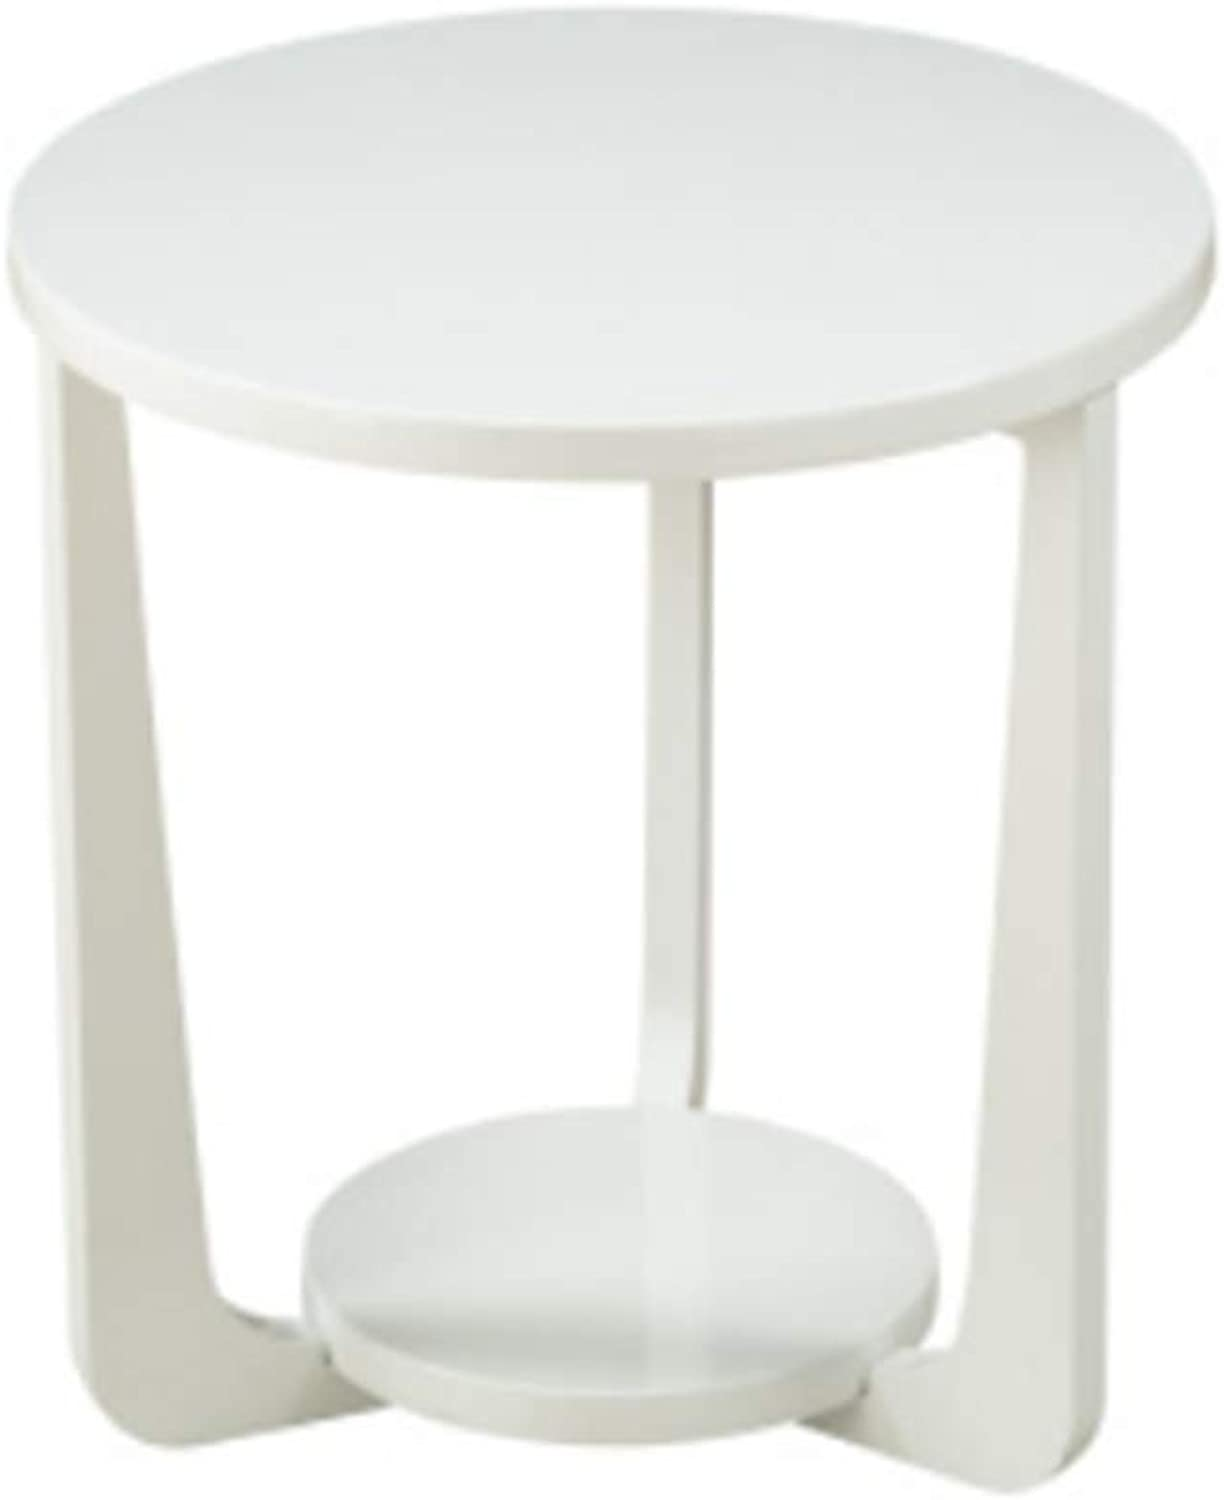 Nightstand Side Table, Round Reinforce Bedroom Bedside Table, Living Room Sofa Side Table, Solid Wood Balcony Casual Coffee Table, Floor Computer Desk, 3 colors End Table (color   White)